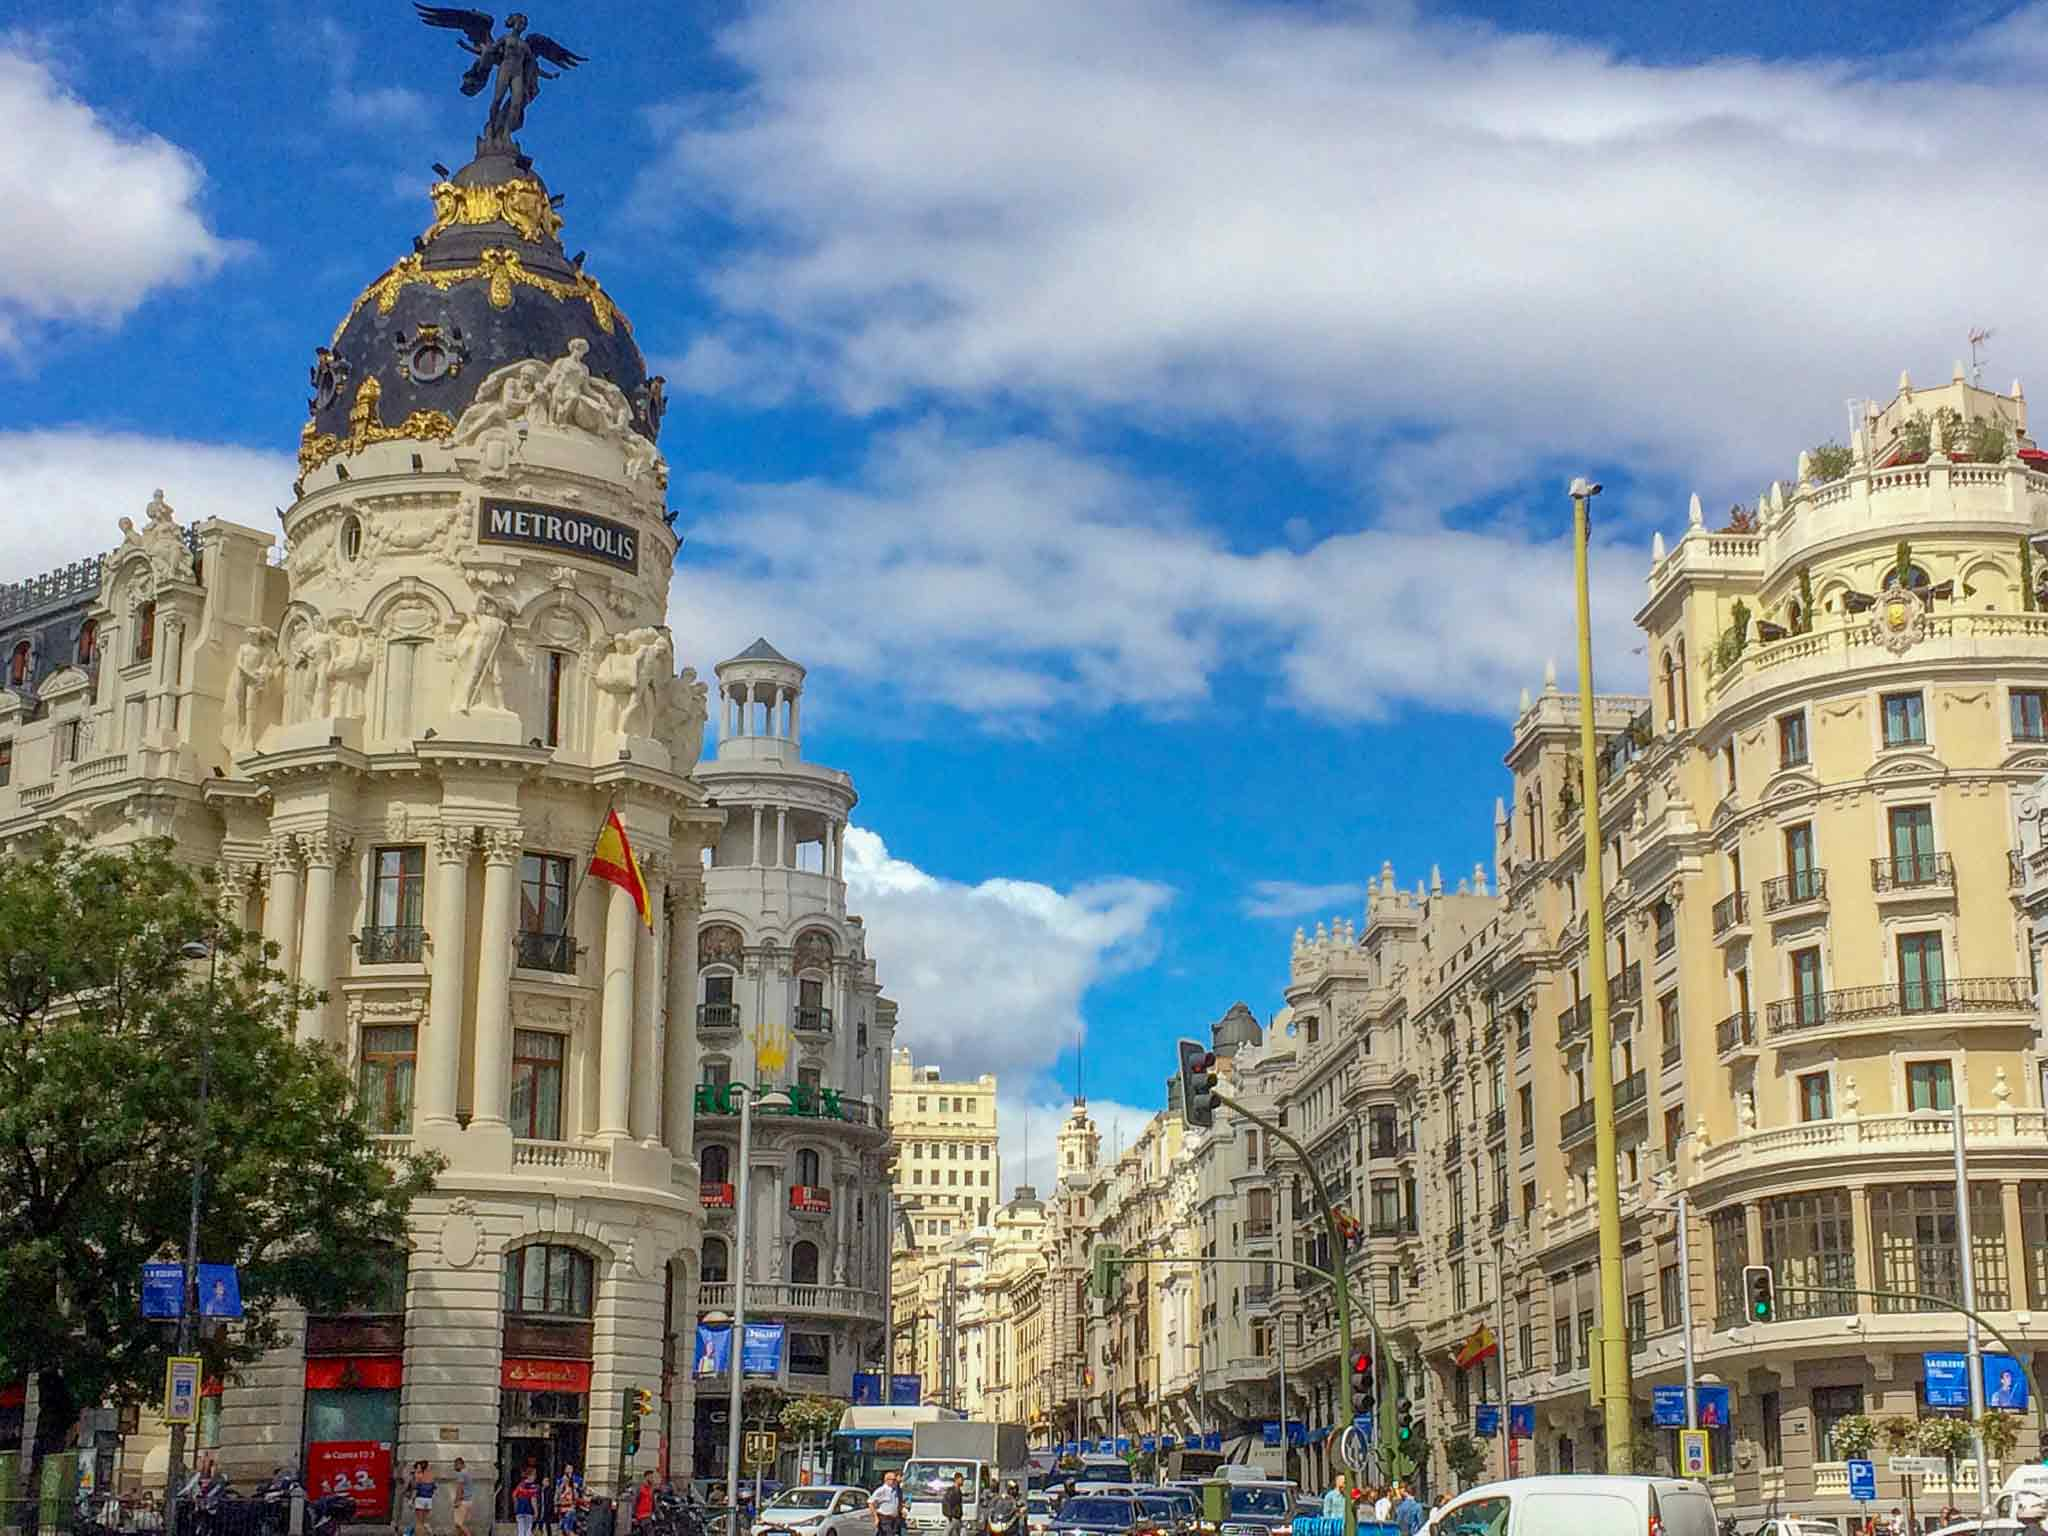 A picture of the Metropolis building with a busy Gran Via in the background in Madrid, Spain.